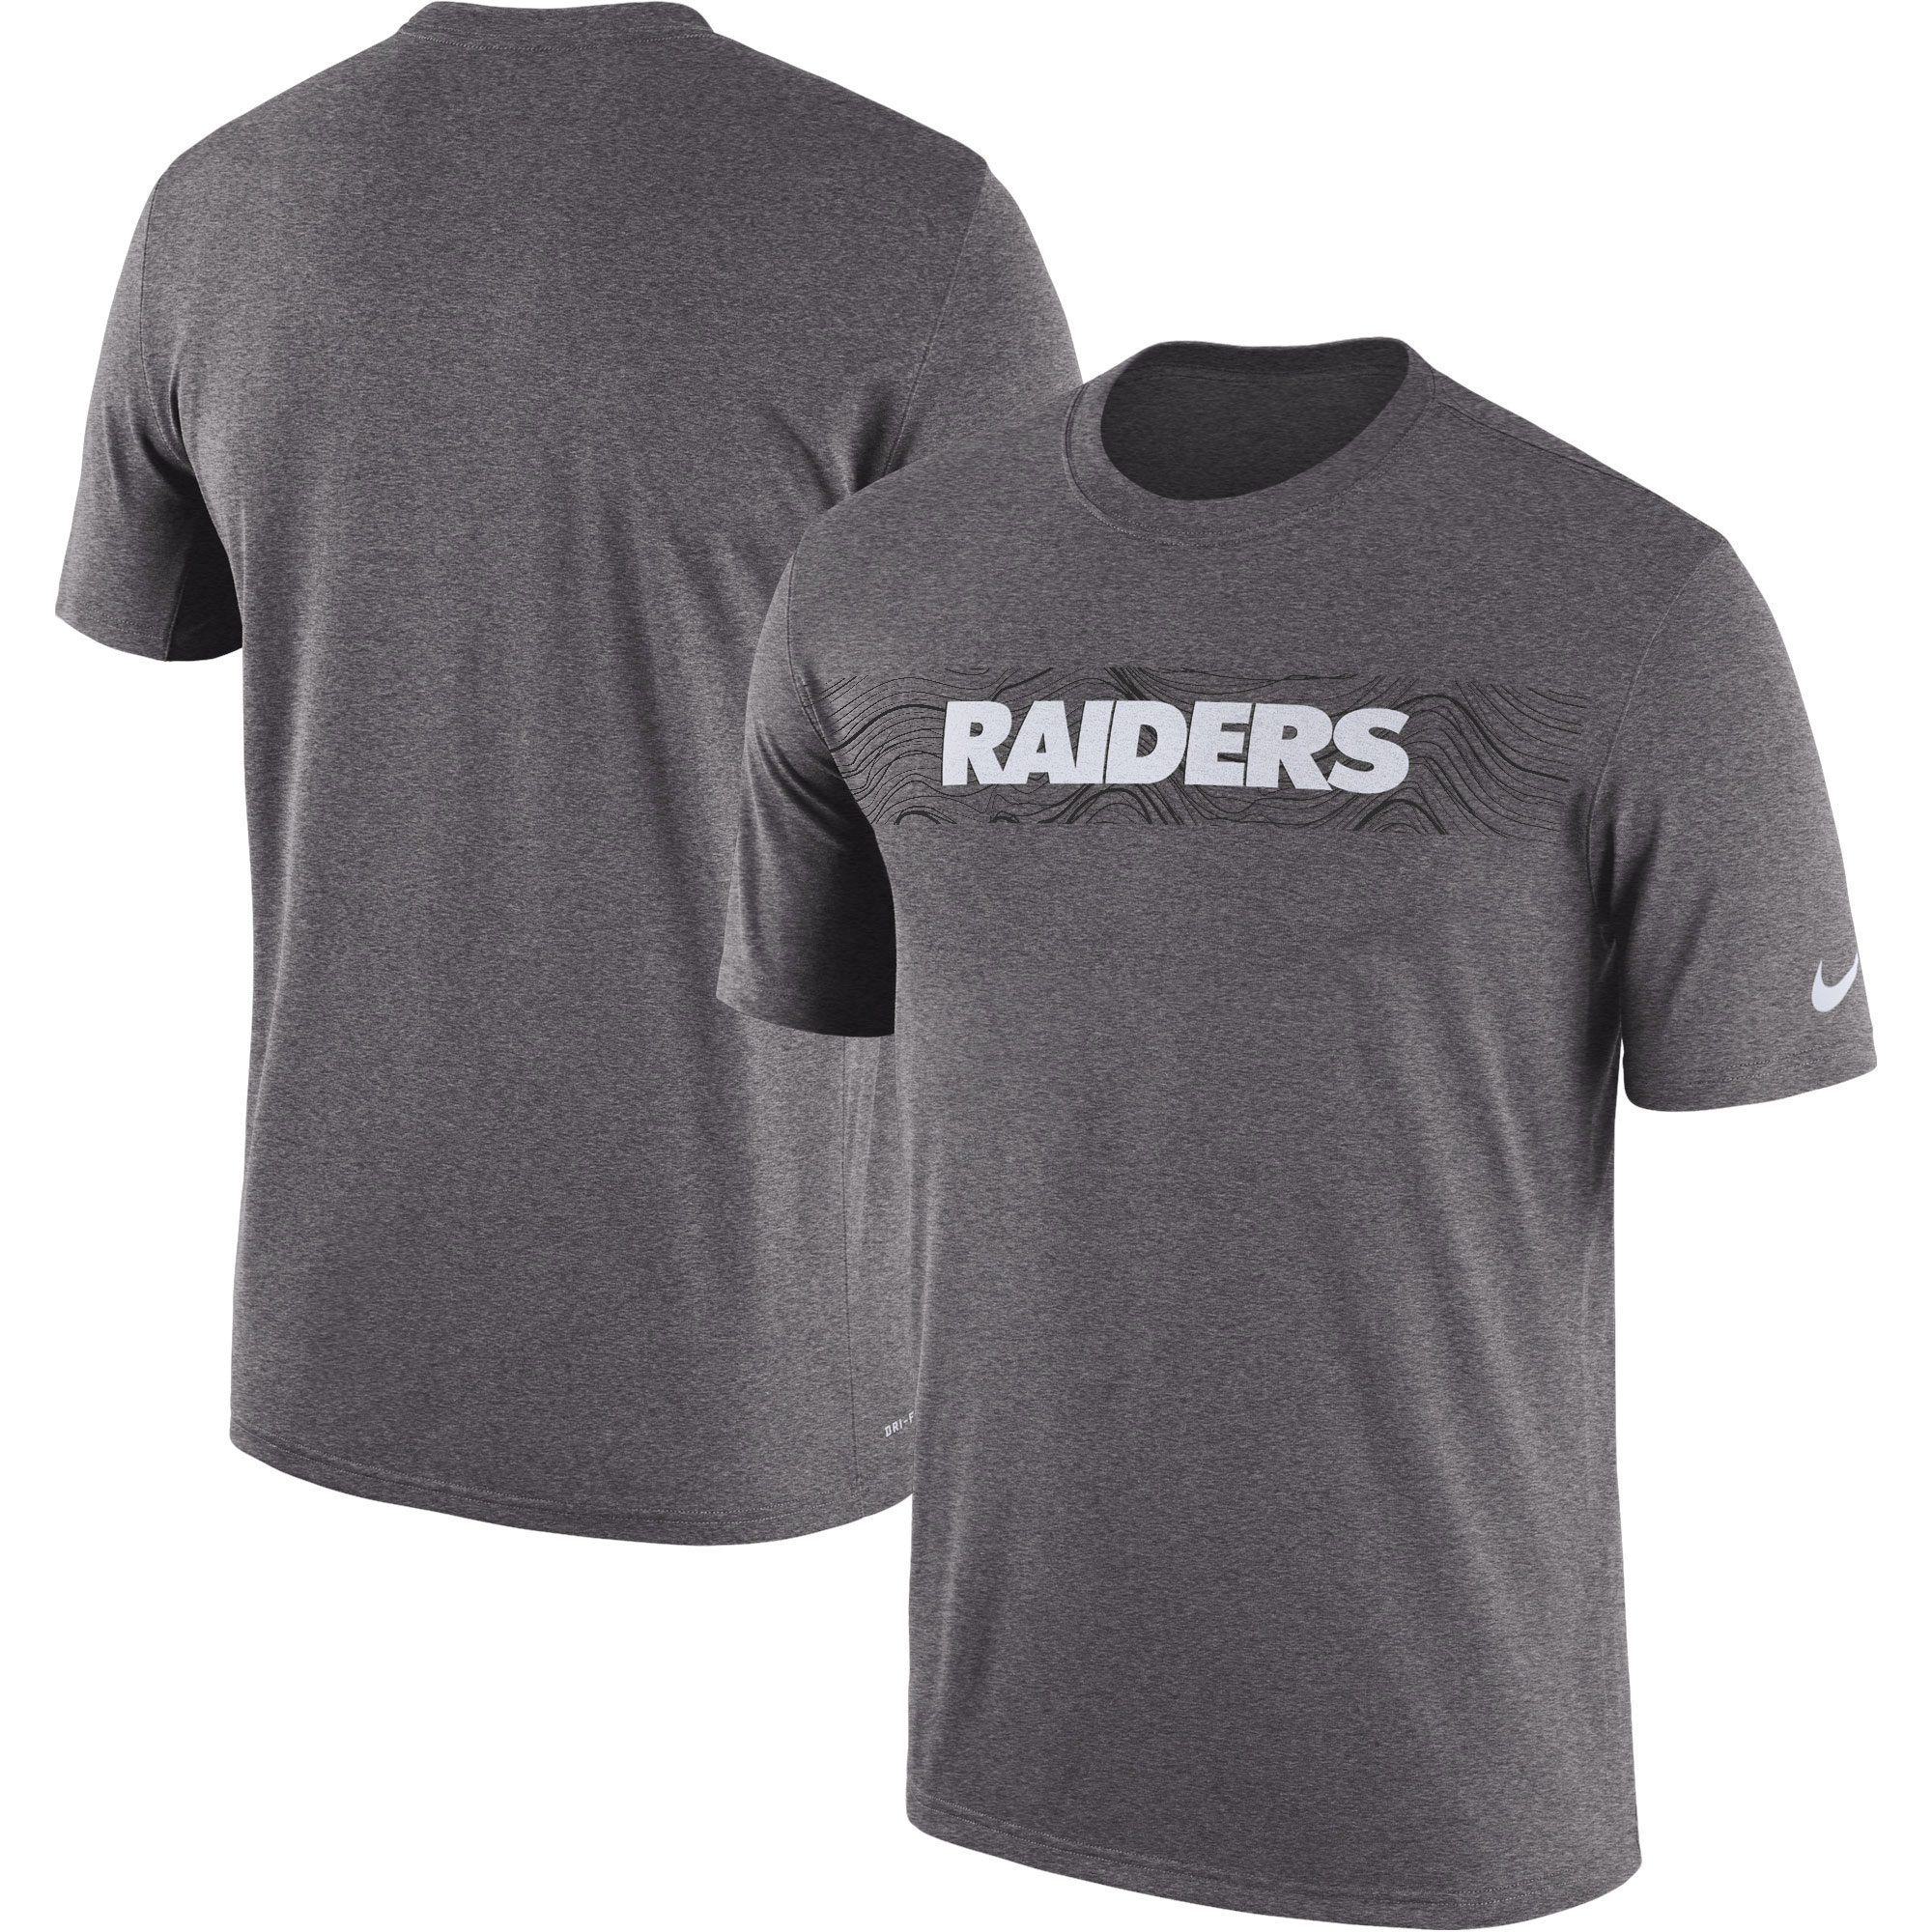 Oakland Raiders Nike Sideline Seismic Legend Performance T-Shirt - Heathered Charcoal